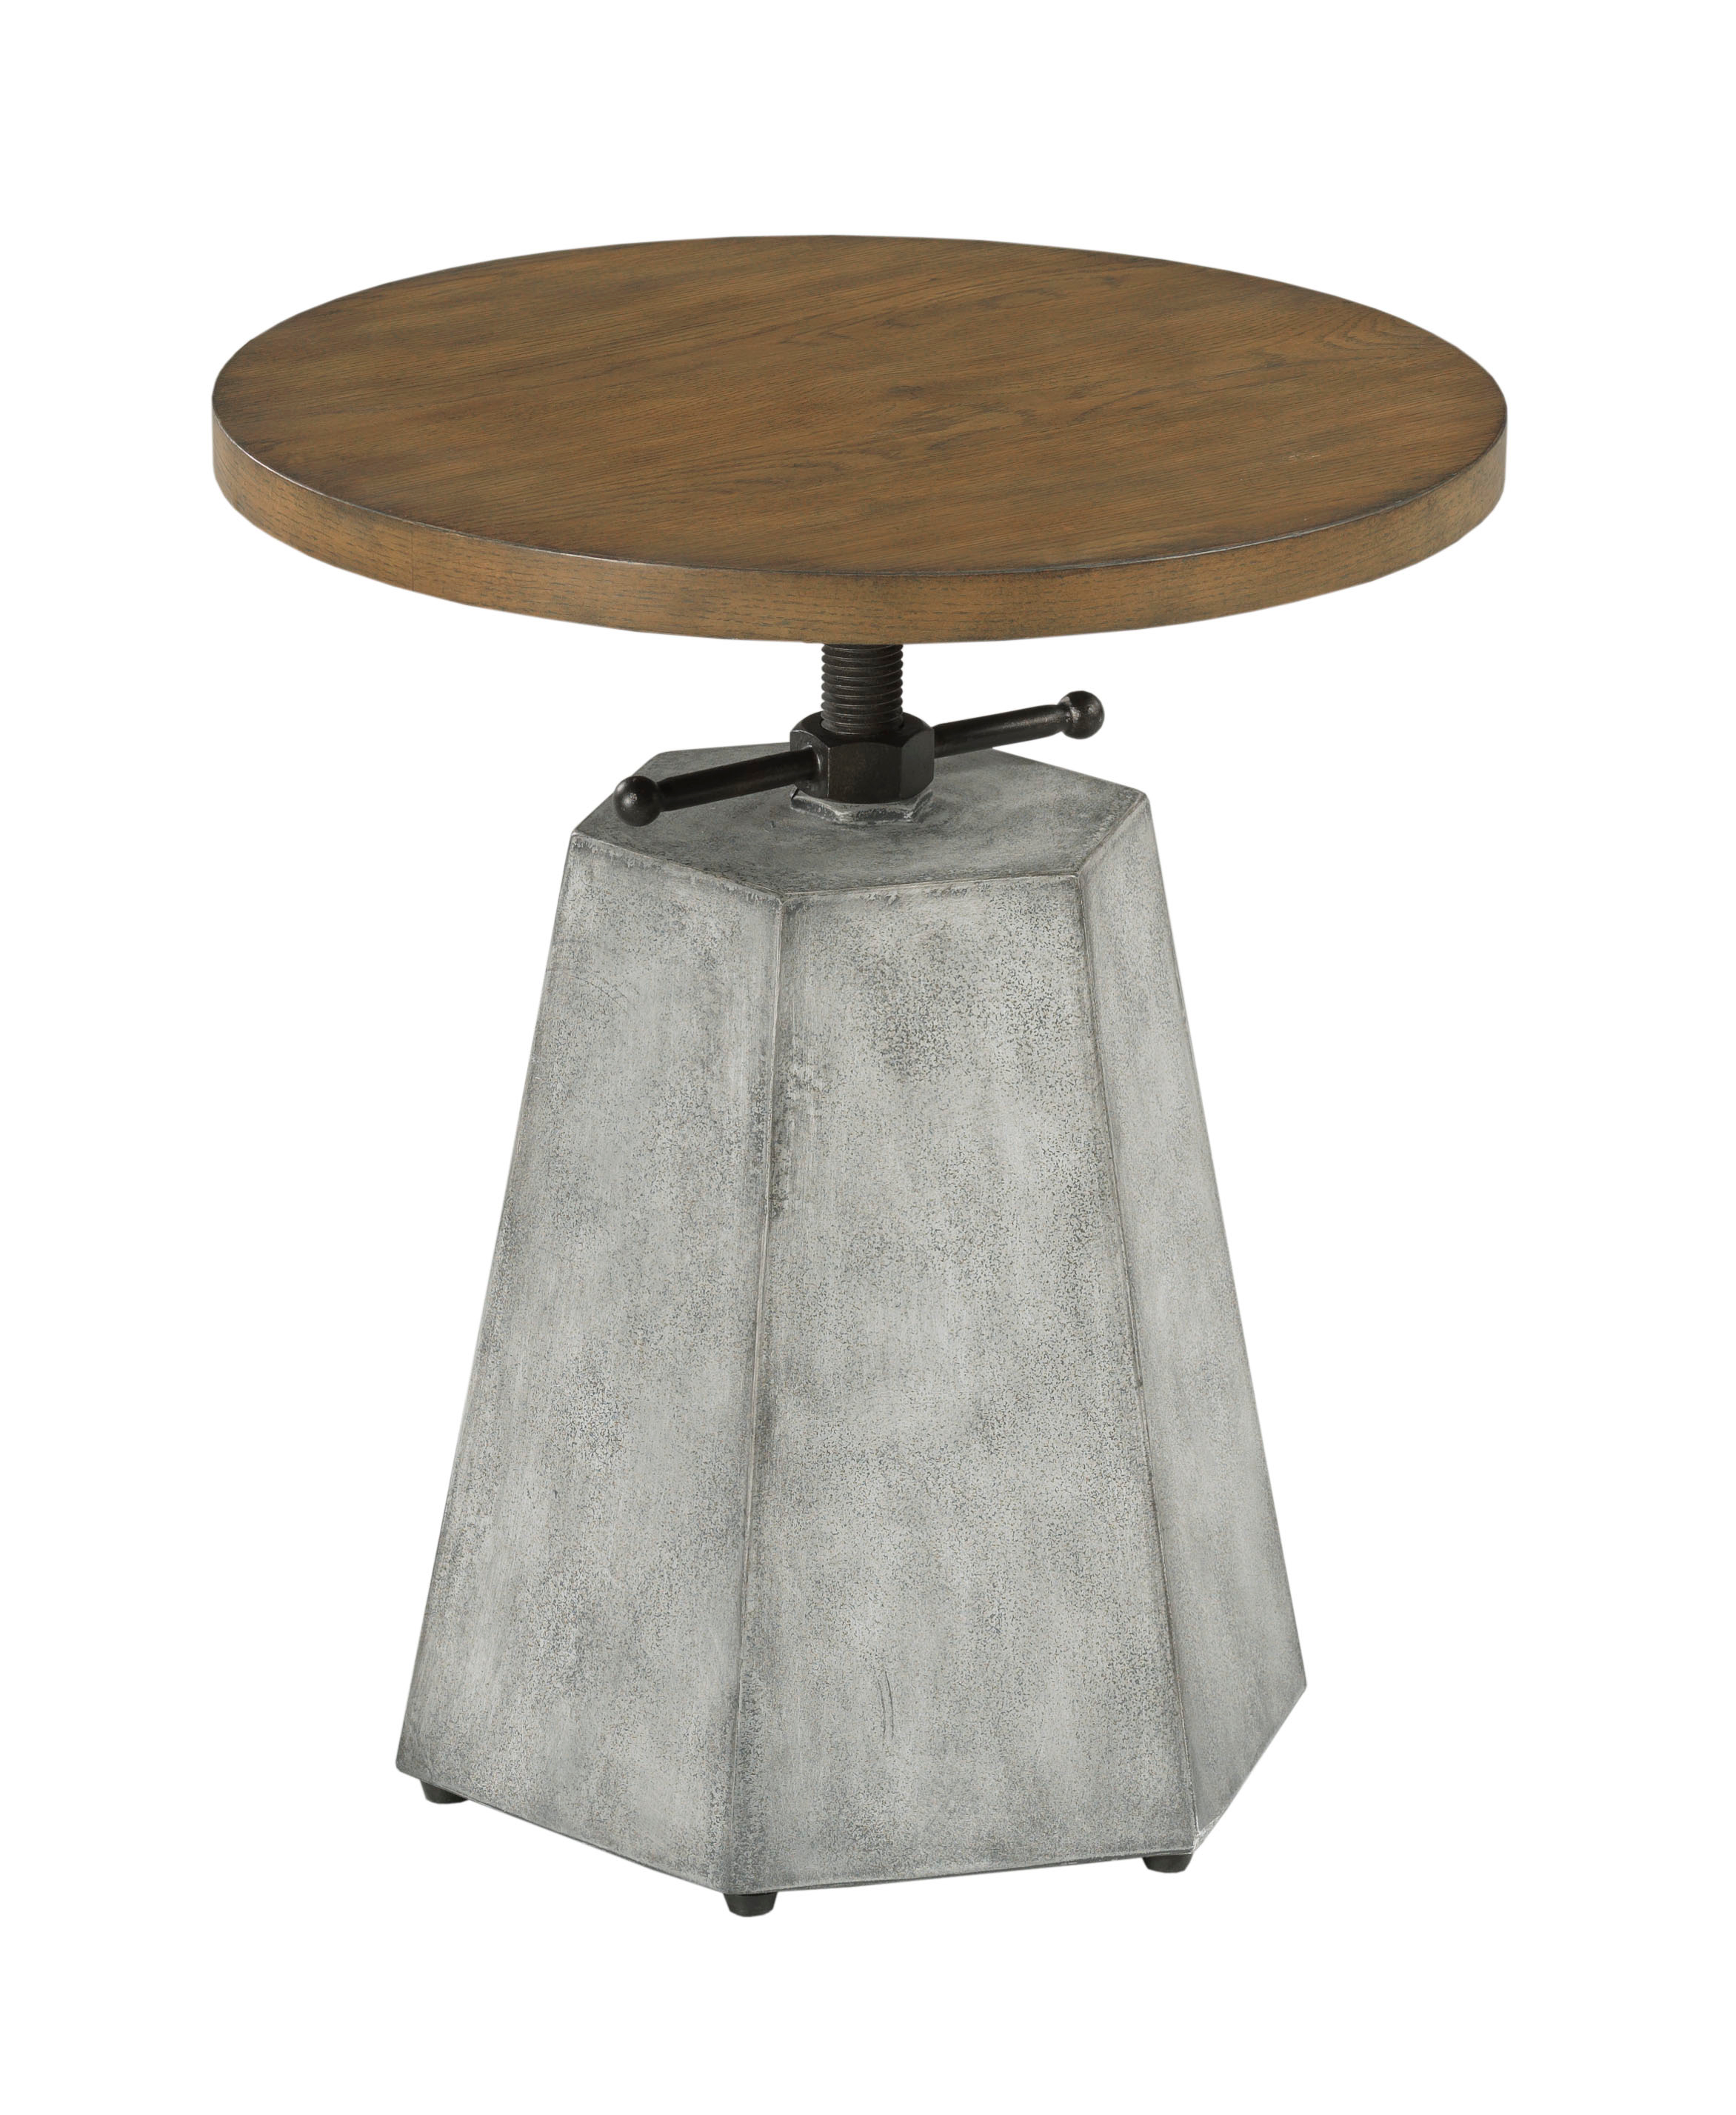 Olmsted Adjustable Accent Table by Hammary at Crowley Furniture & Mattress